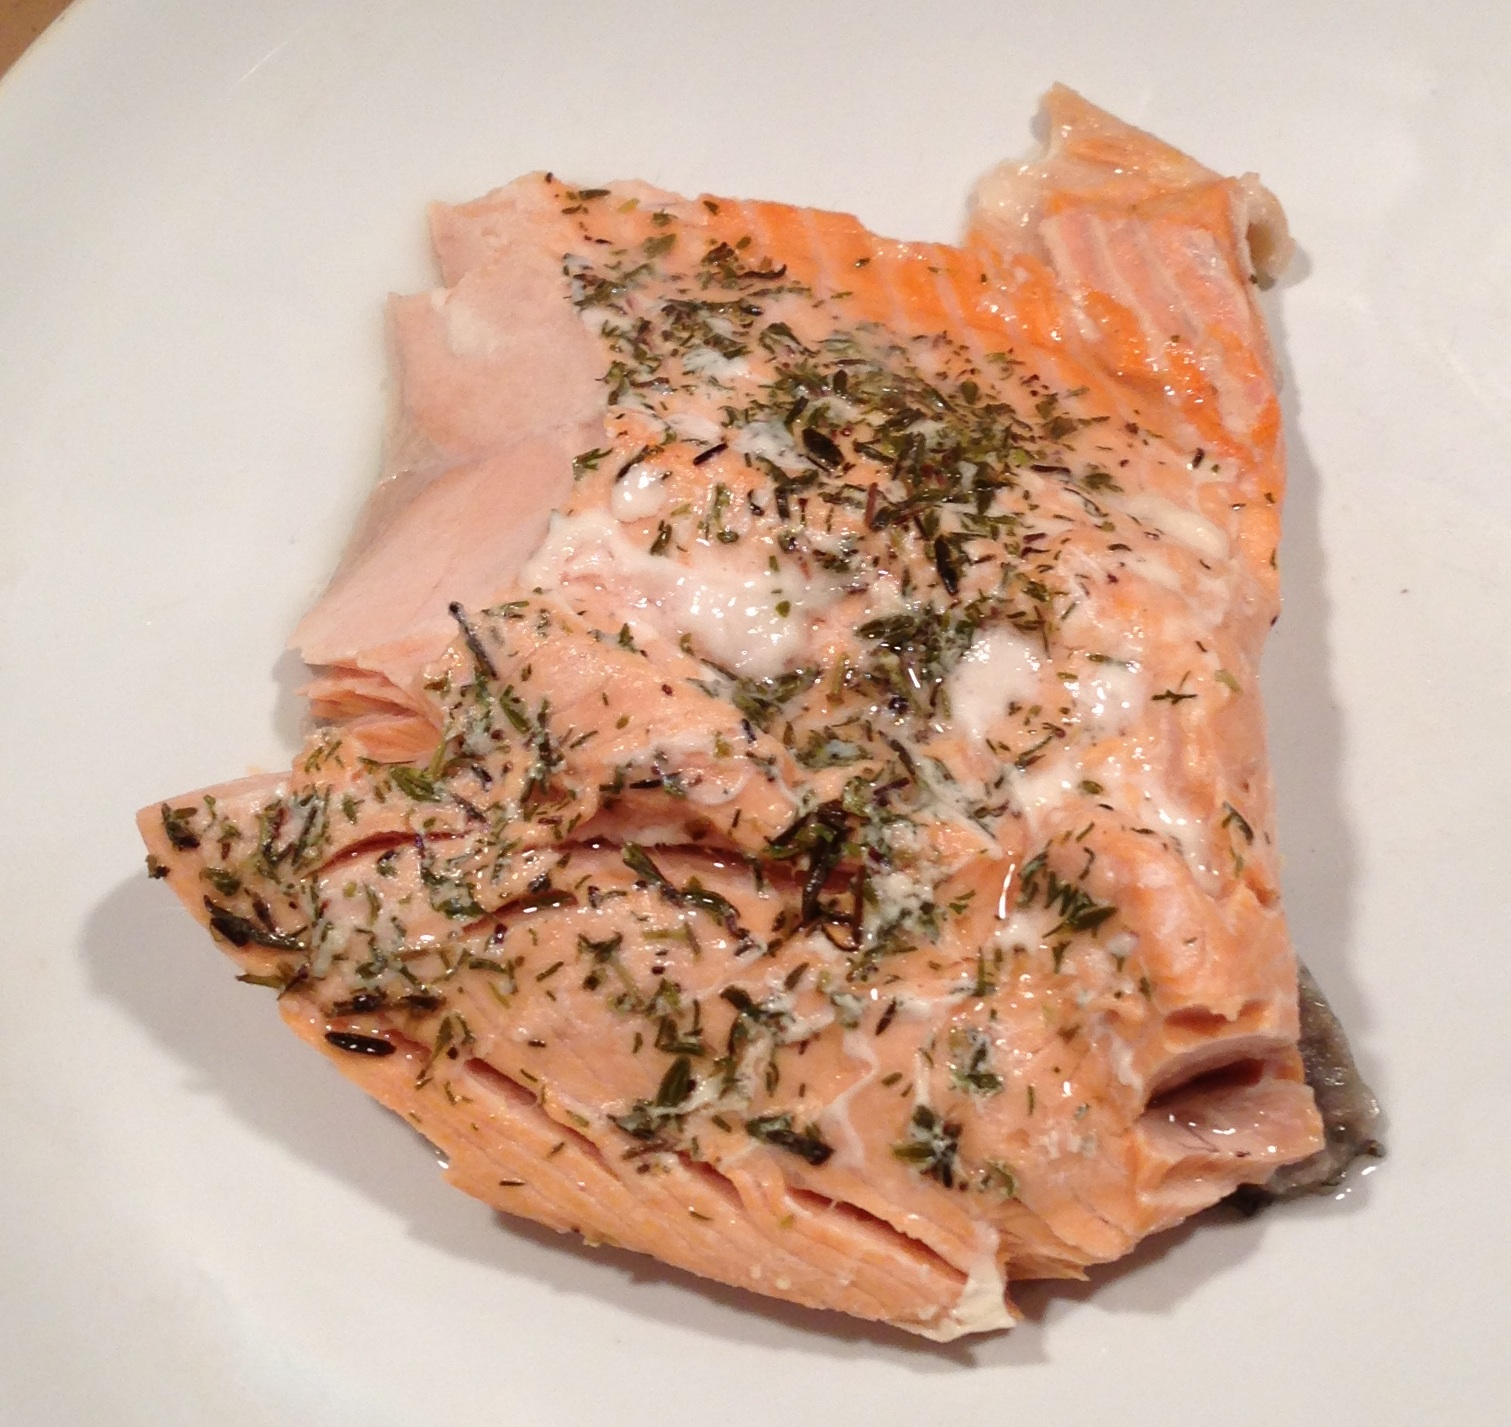 How delicious to cook pink salmon